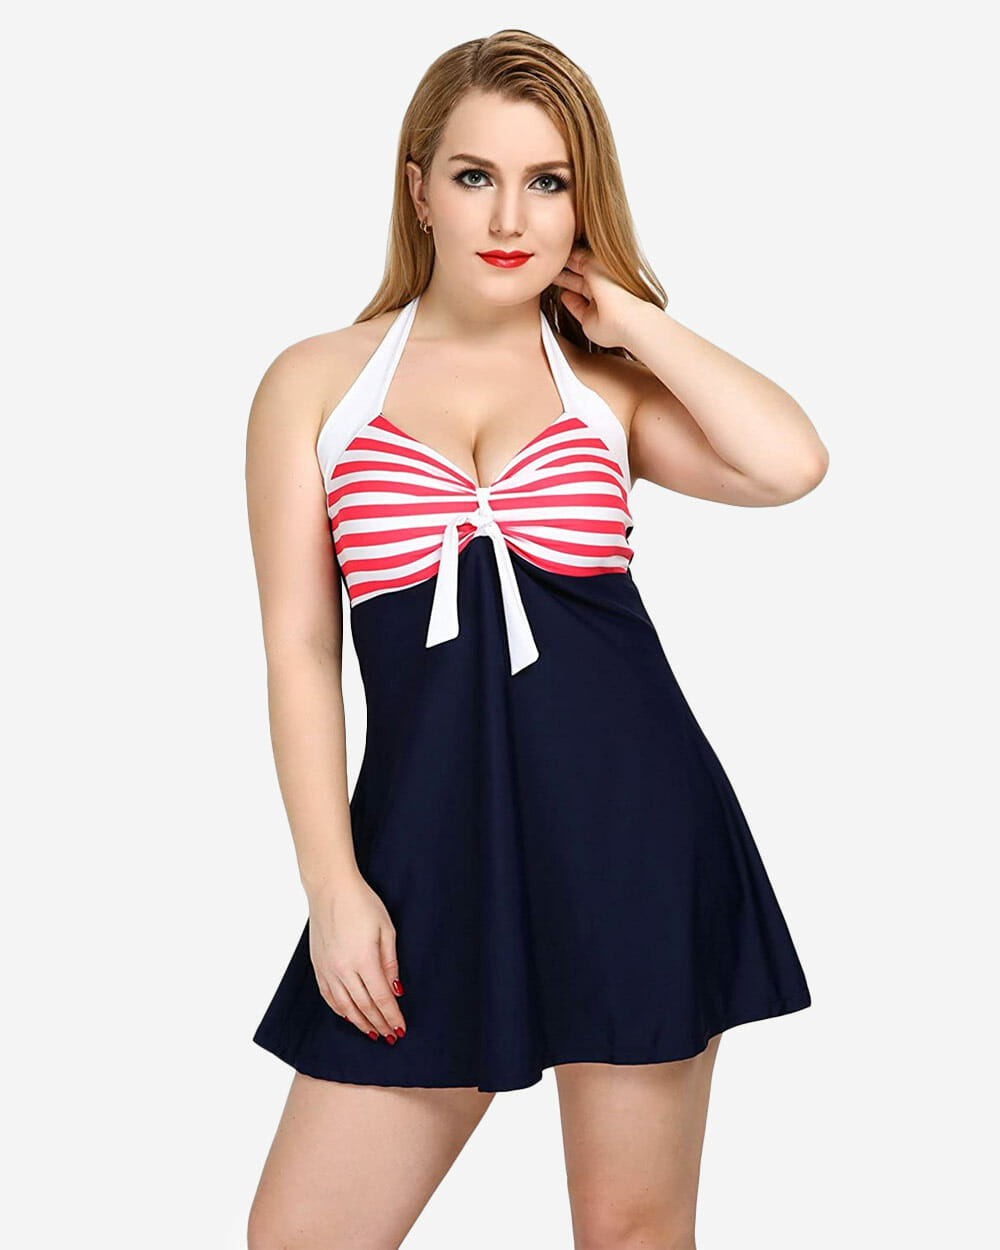 Vintage Sailor Pin Up Swimsuit COCOSHIP